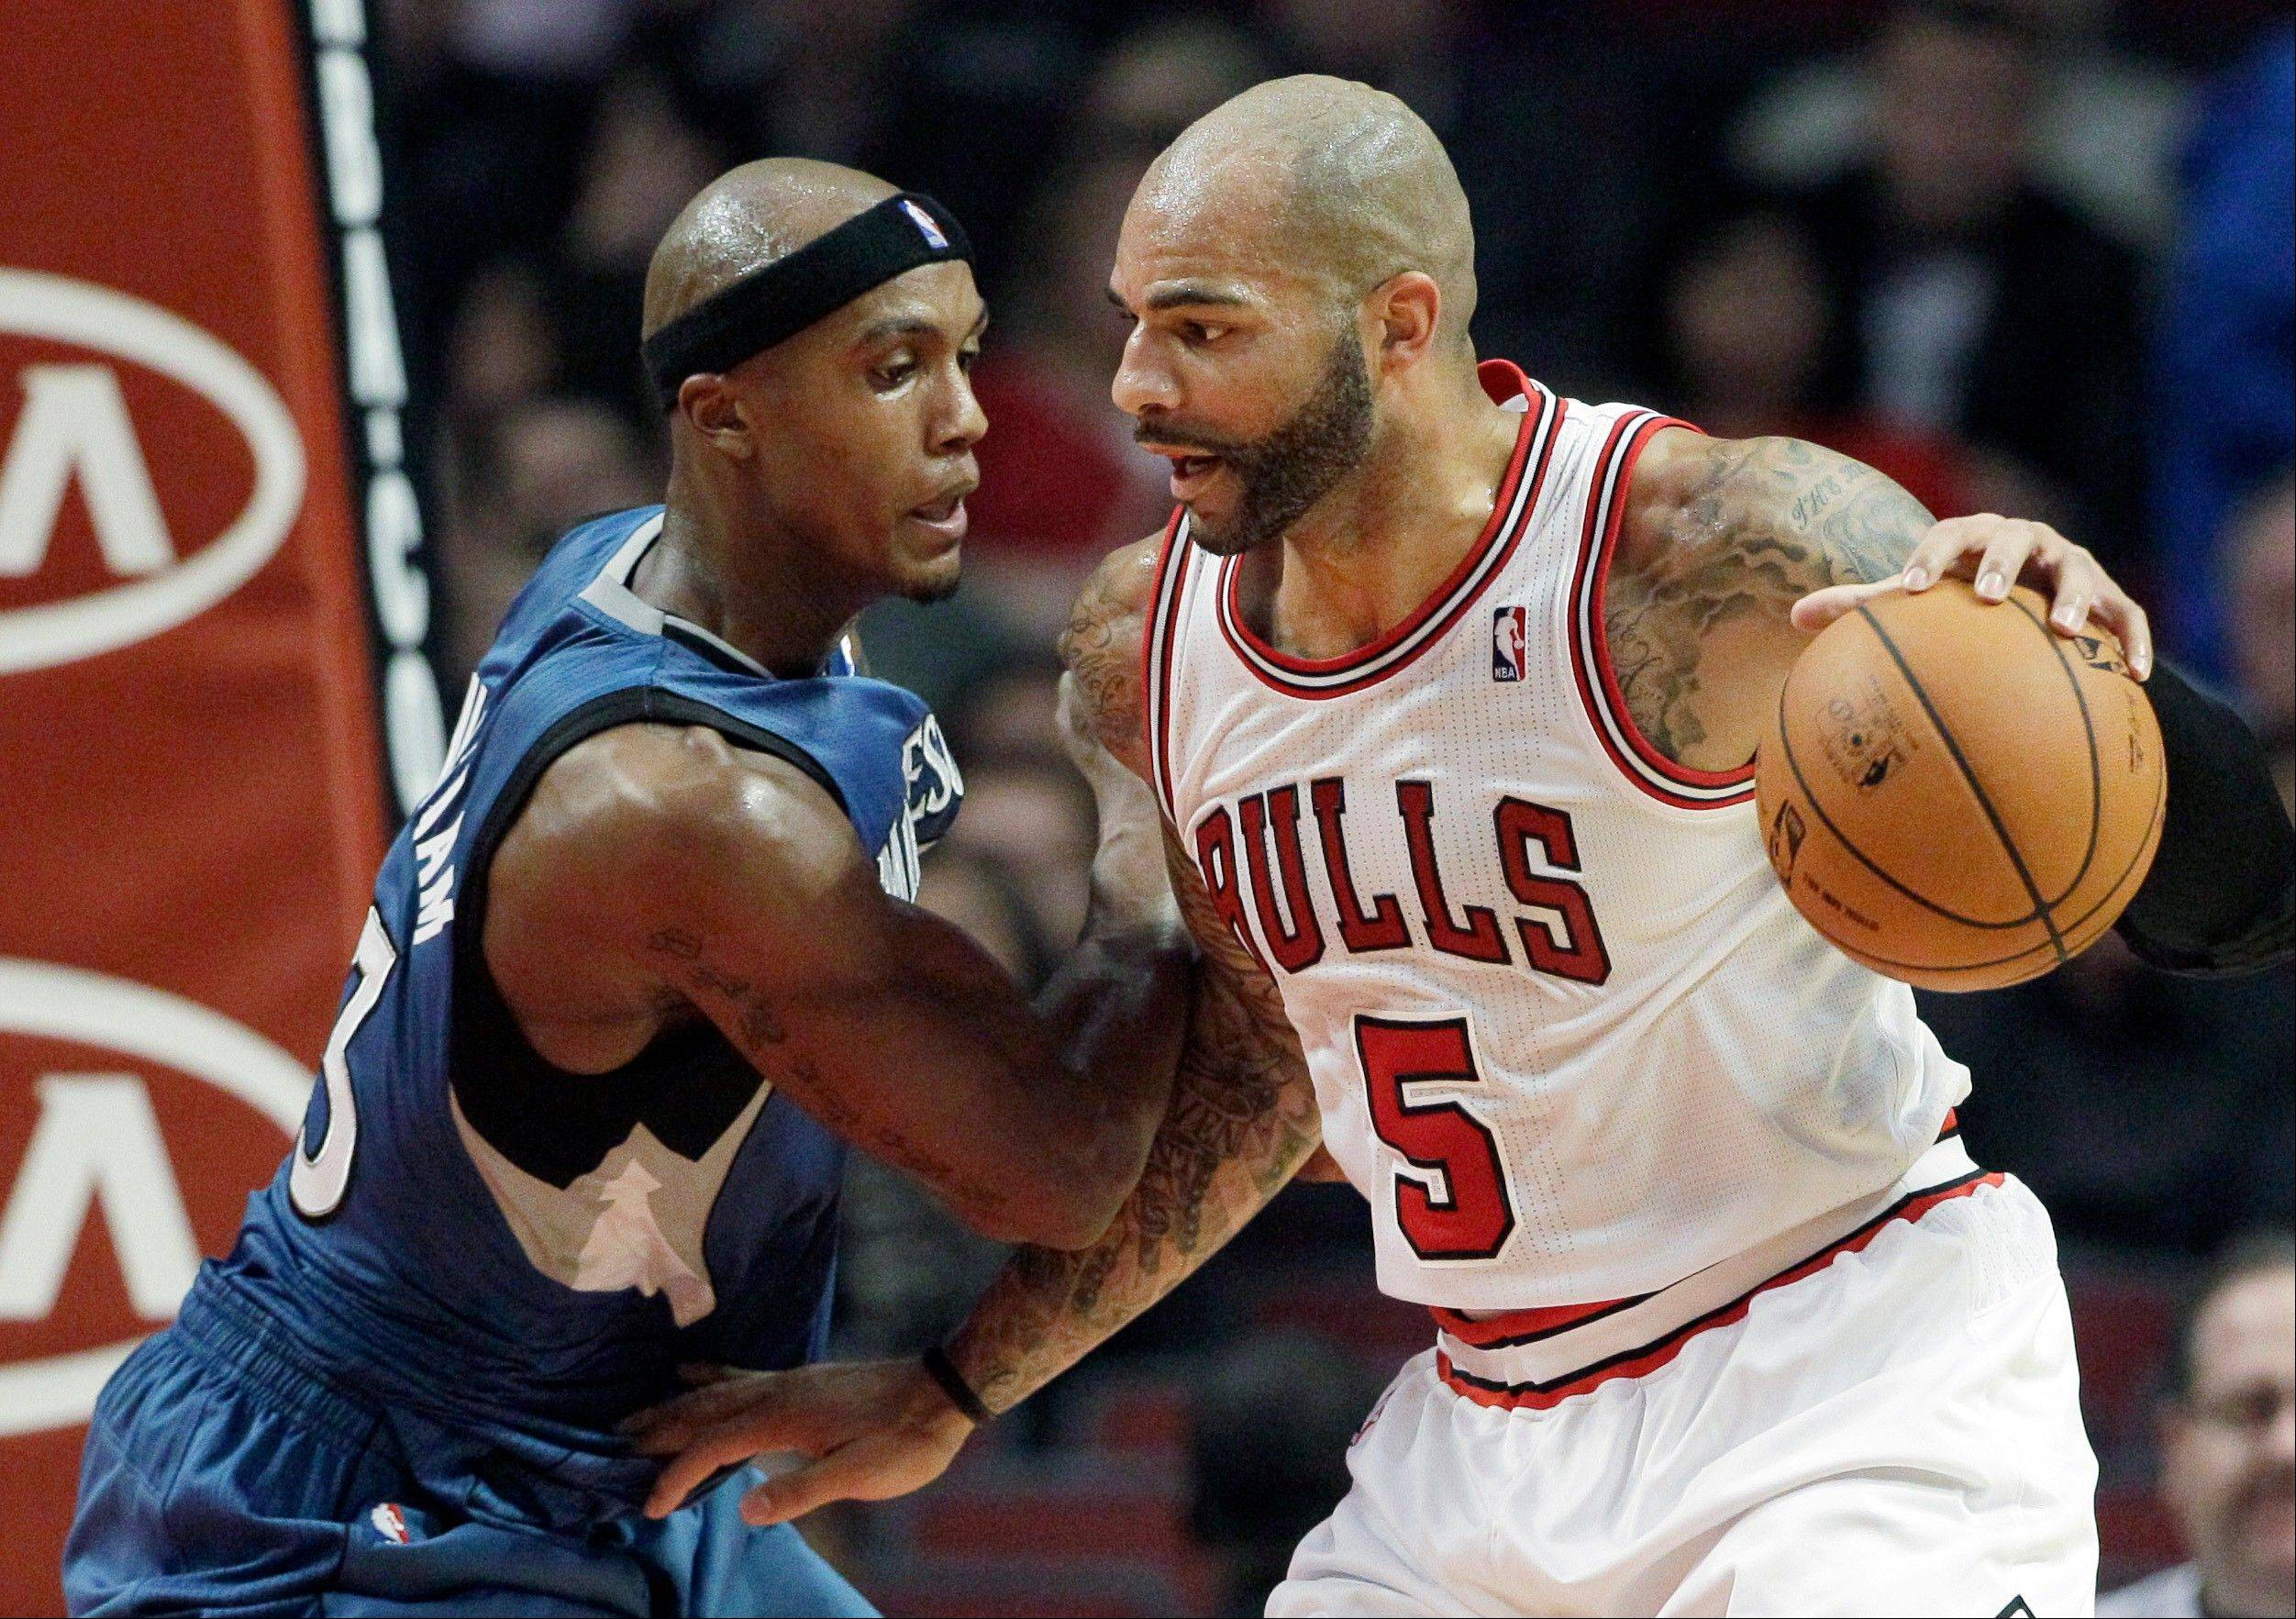 Carlos Boozer controls the ball as Minnesota's Dante Cunningham guards during the first half at the United Center on Friday.